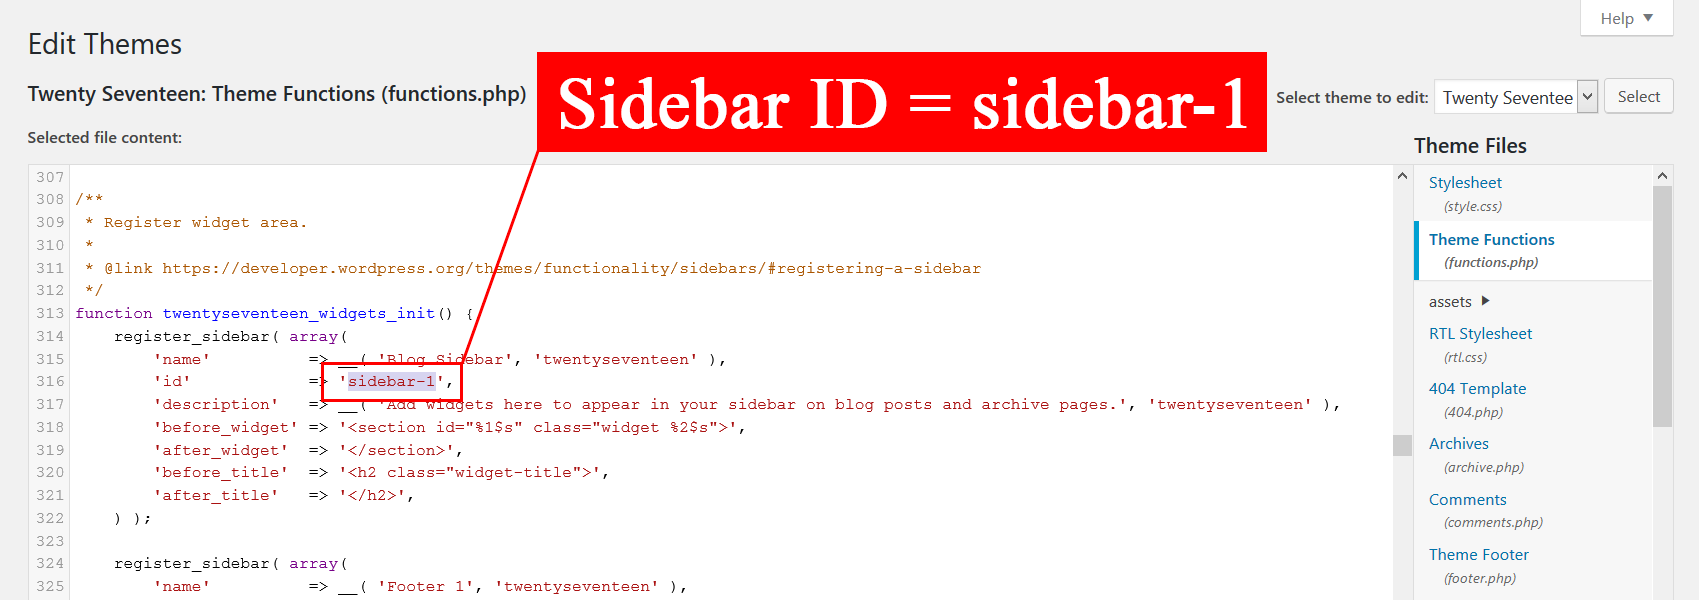 How to find a sidebar ID.